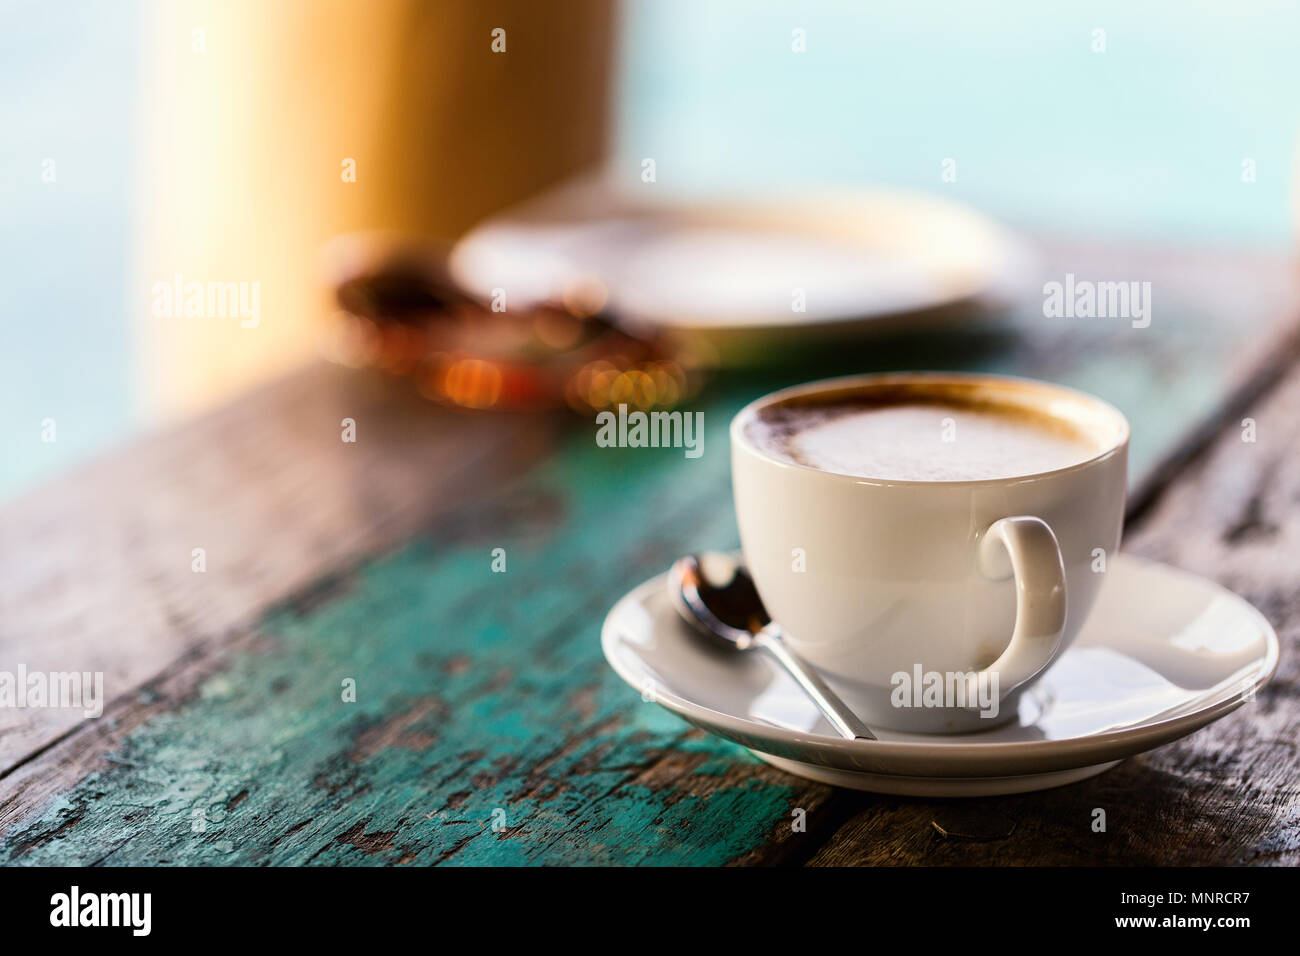 Fresh coffee served for breakfast - Stock Image